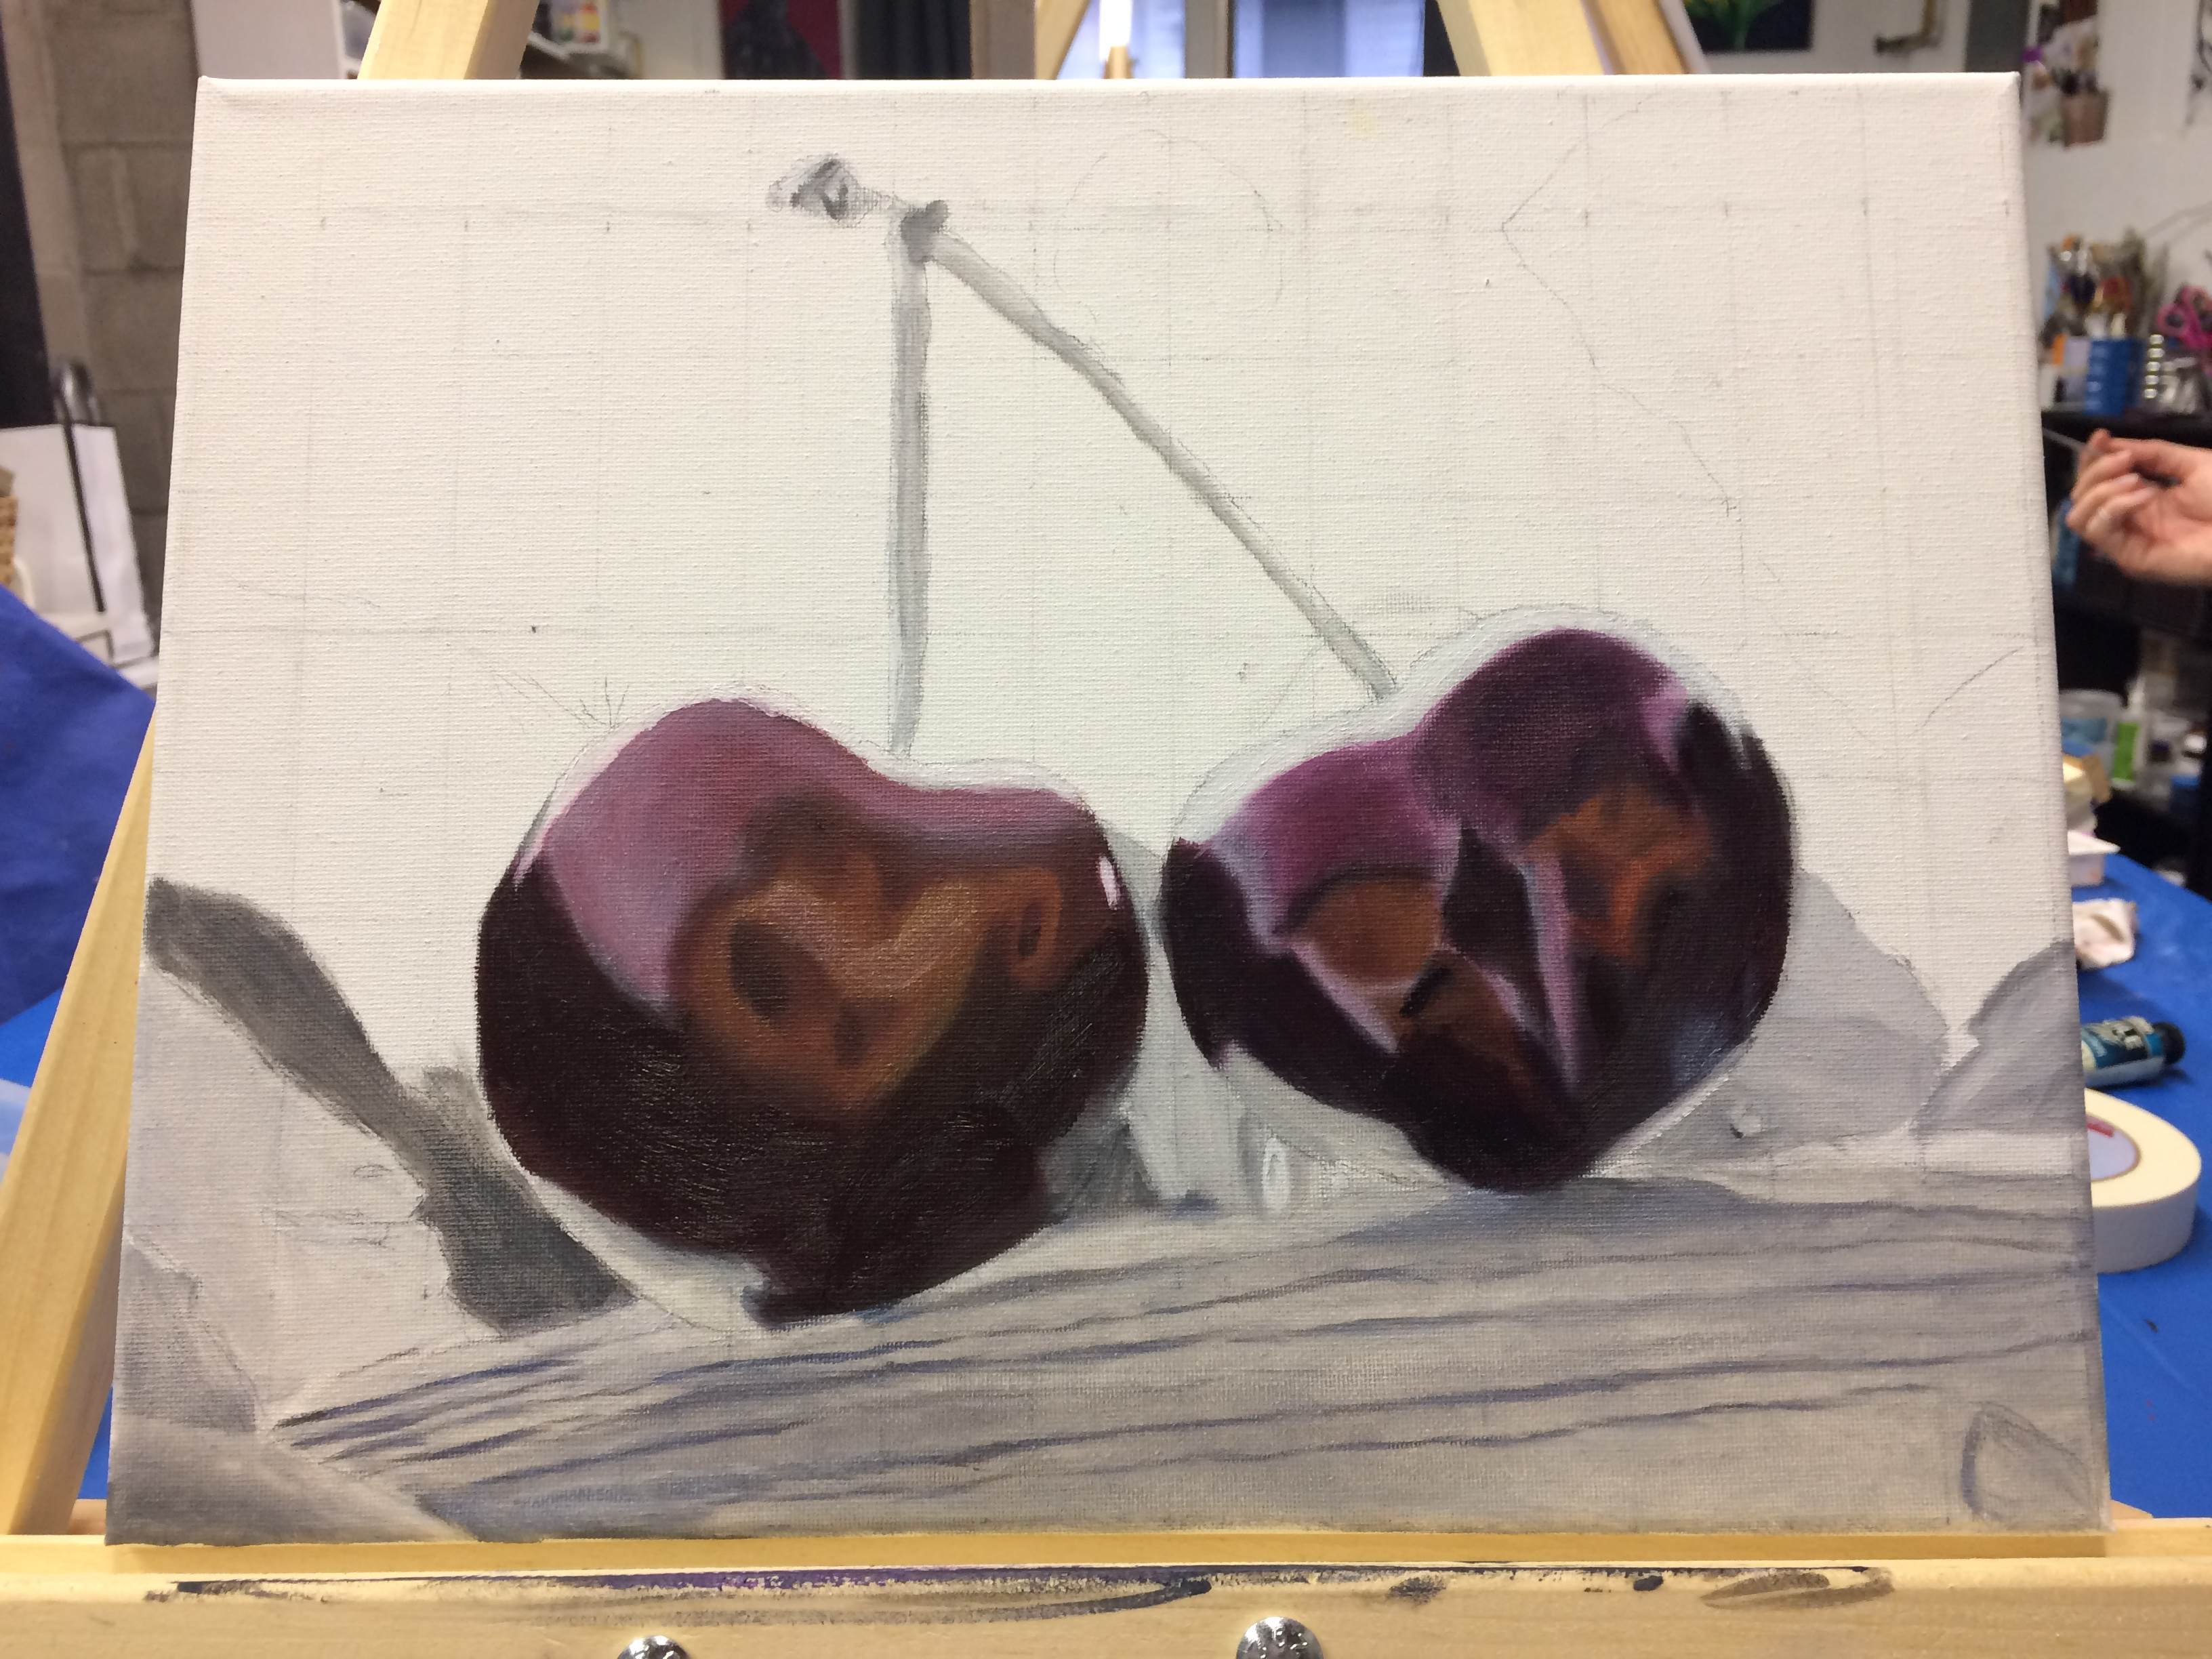 oil painting in progress: white canvas with red cherries painted.